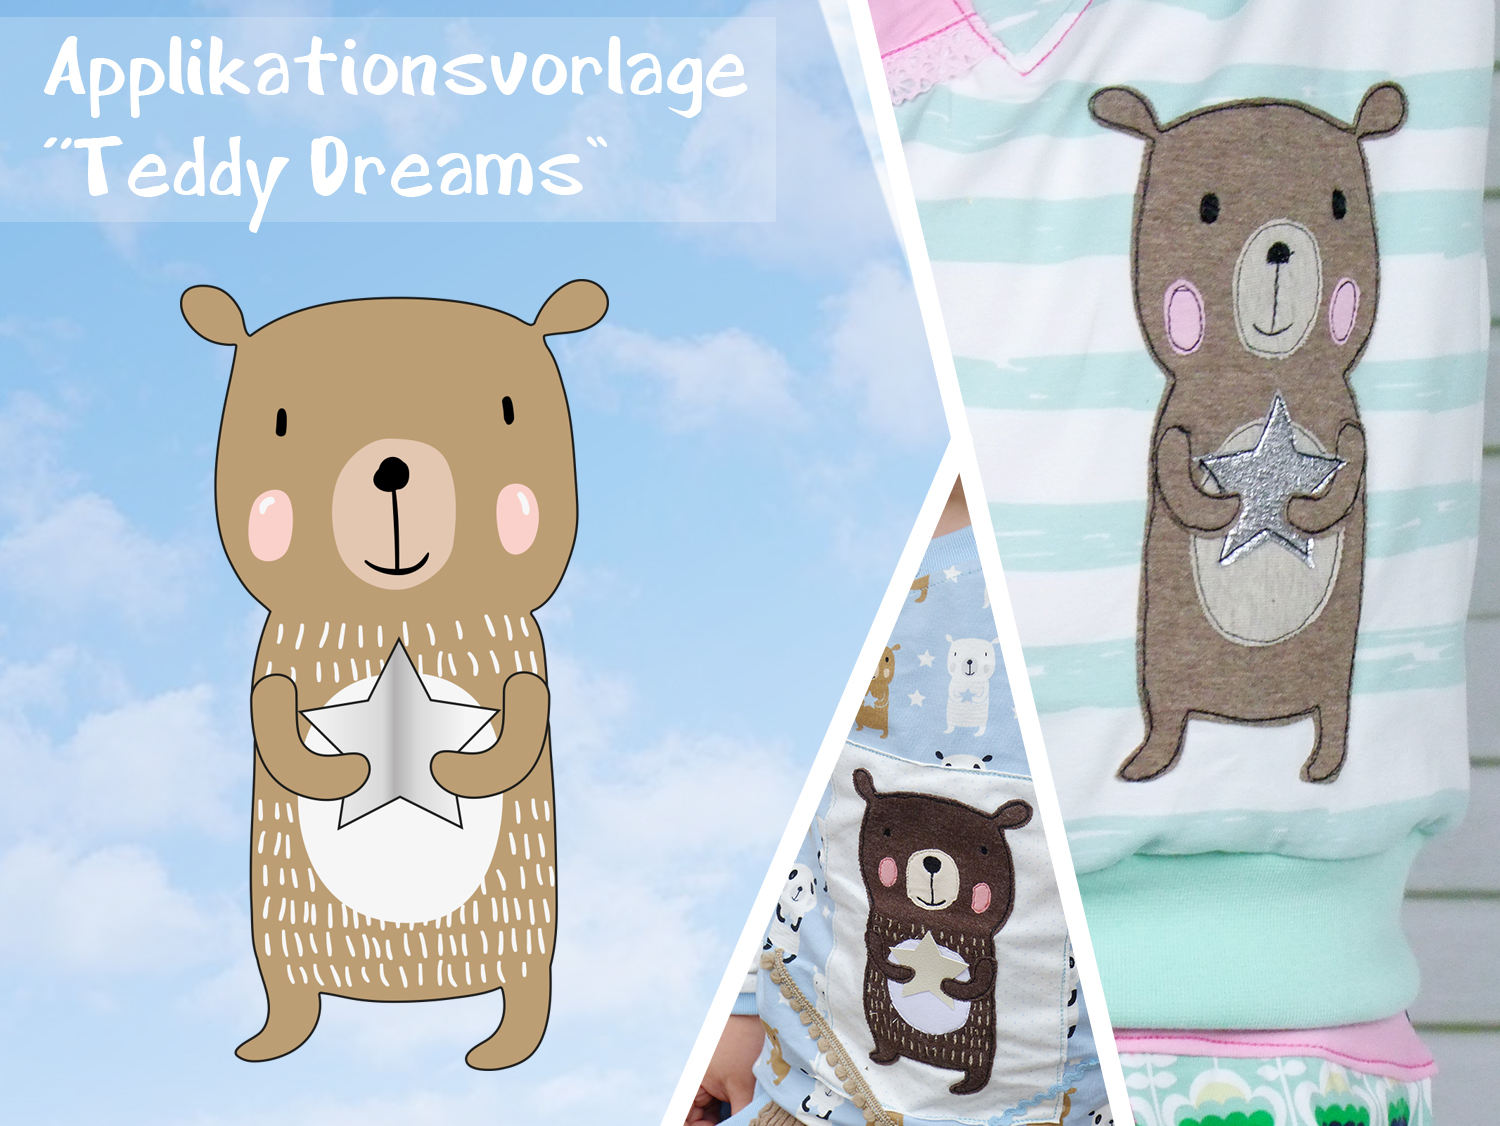 Applikationsvorlage Teddy Dreams